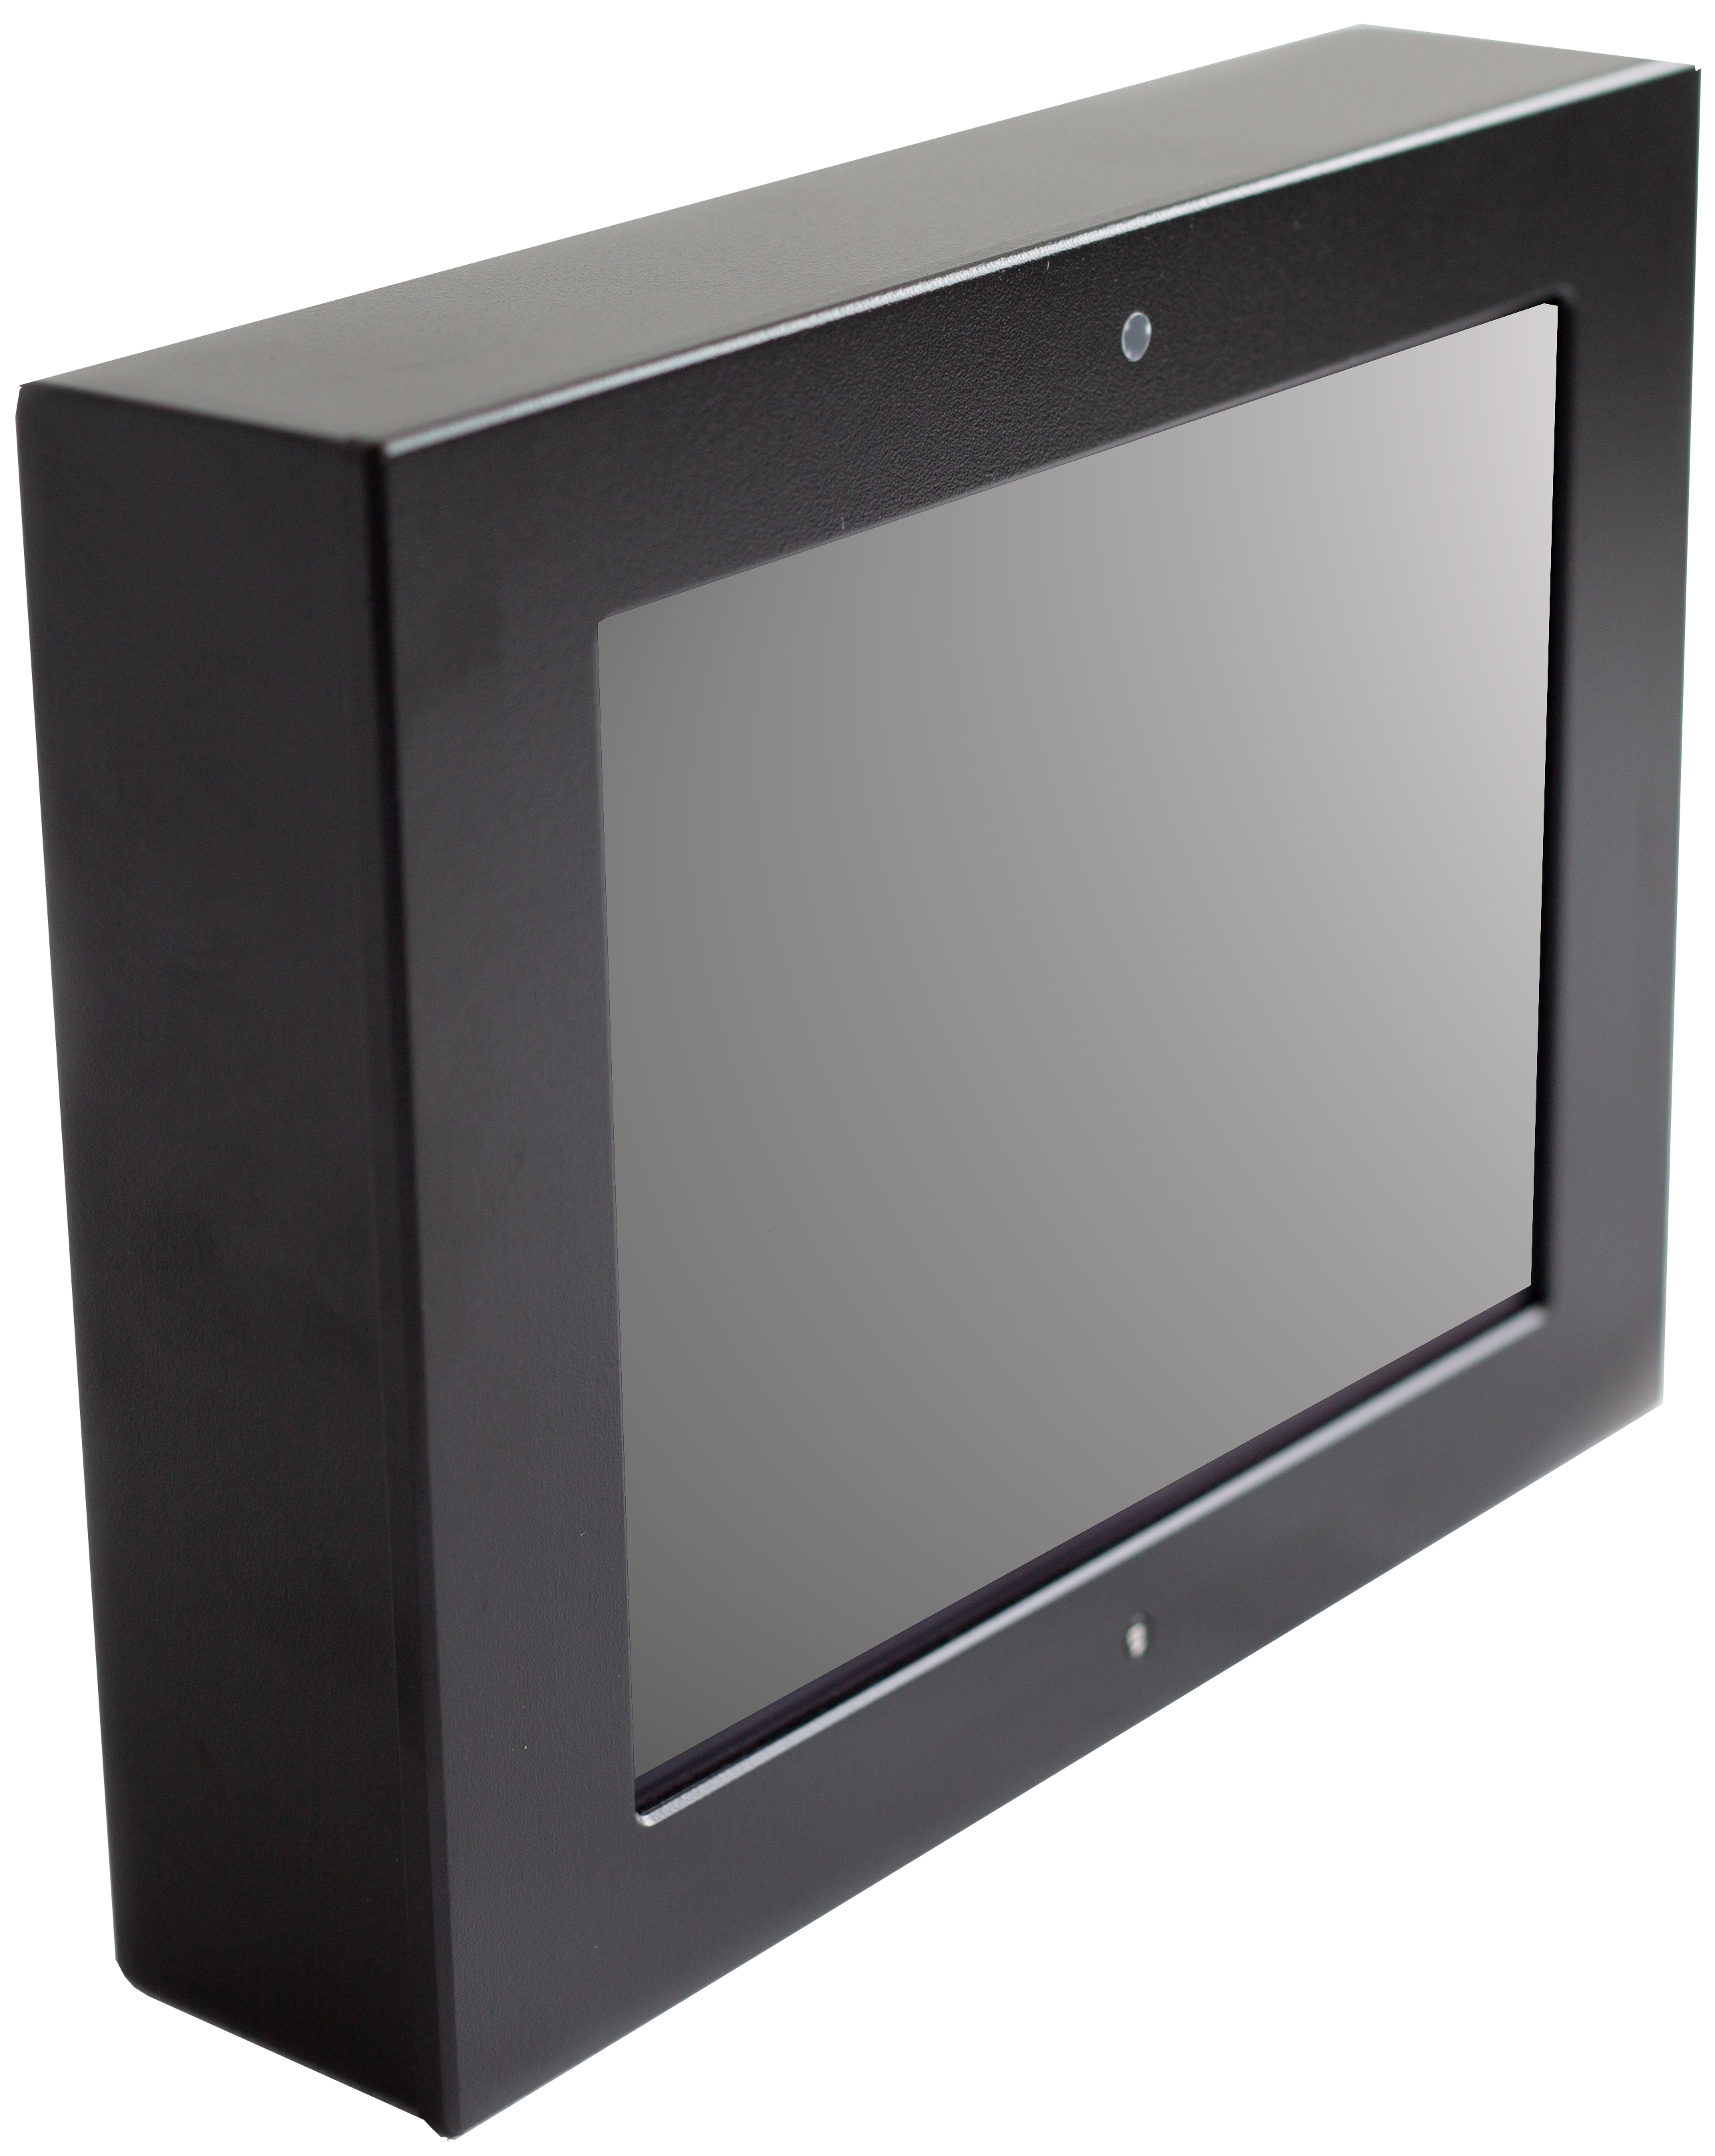 RAILEYE® monitors provide high definition and auto-adapt contrast to different light environments